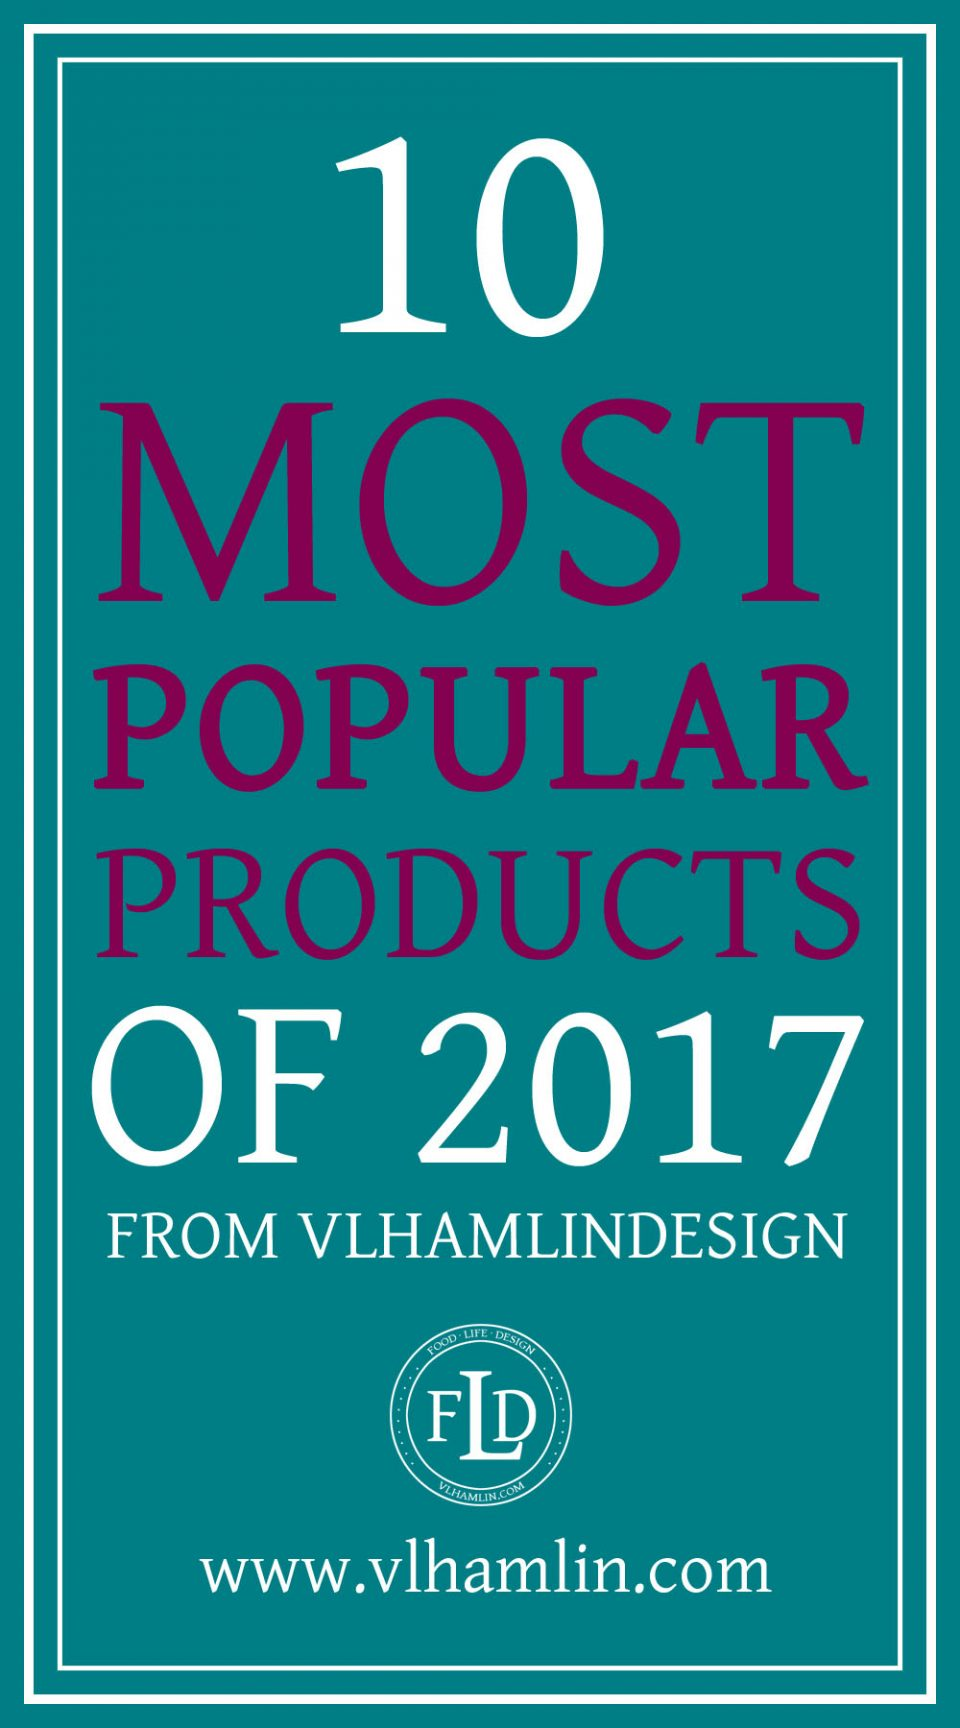 10 Most Popular Products of 2017 from VLHamlinDesign